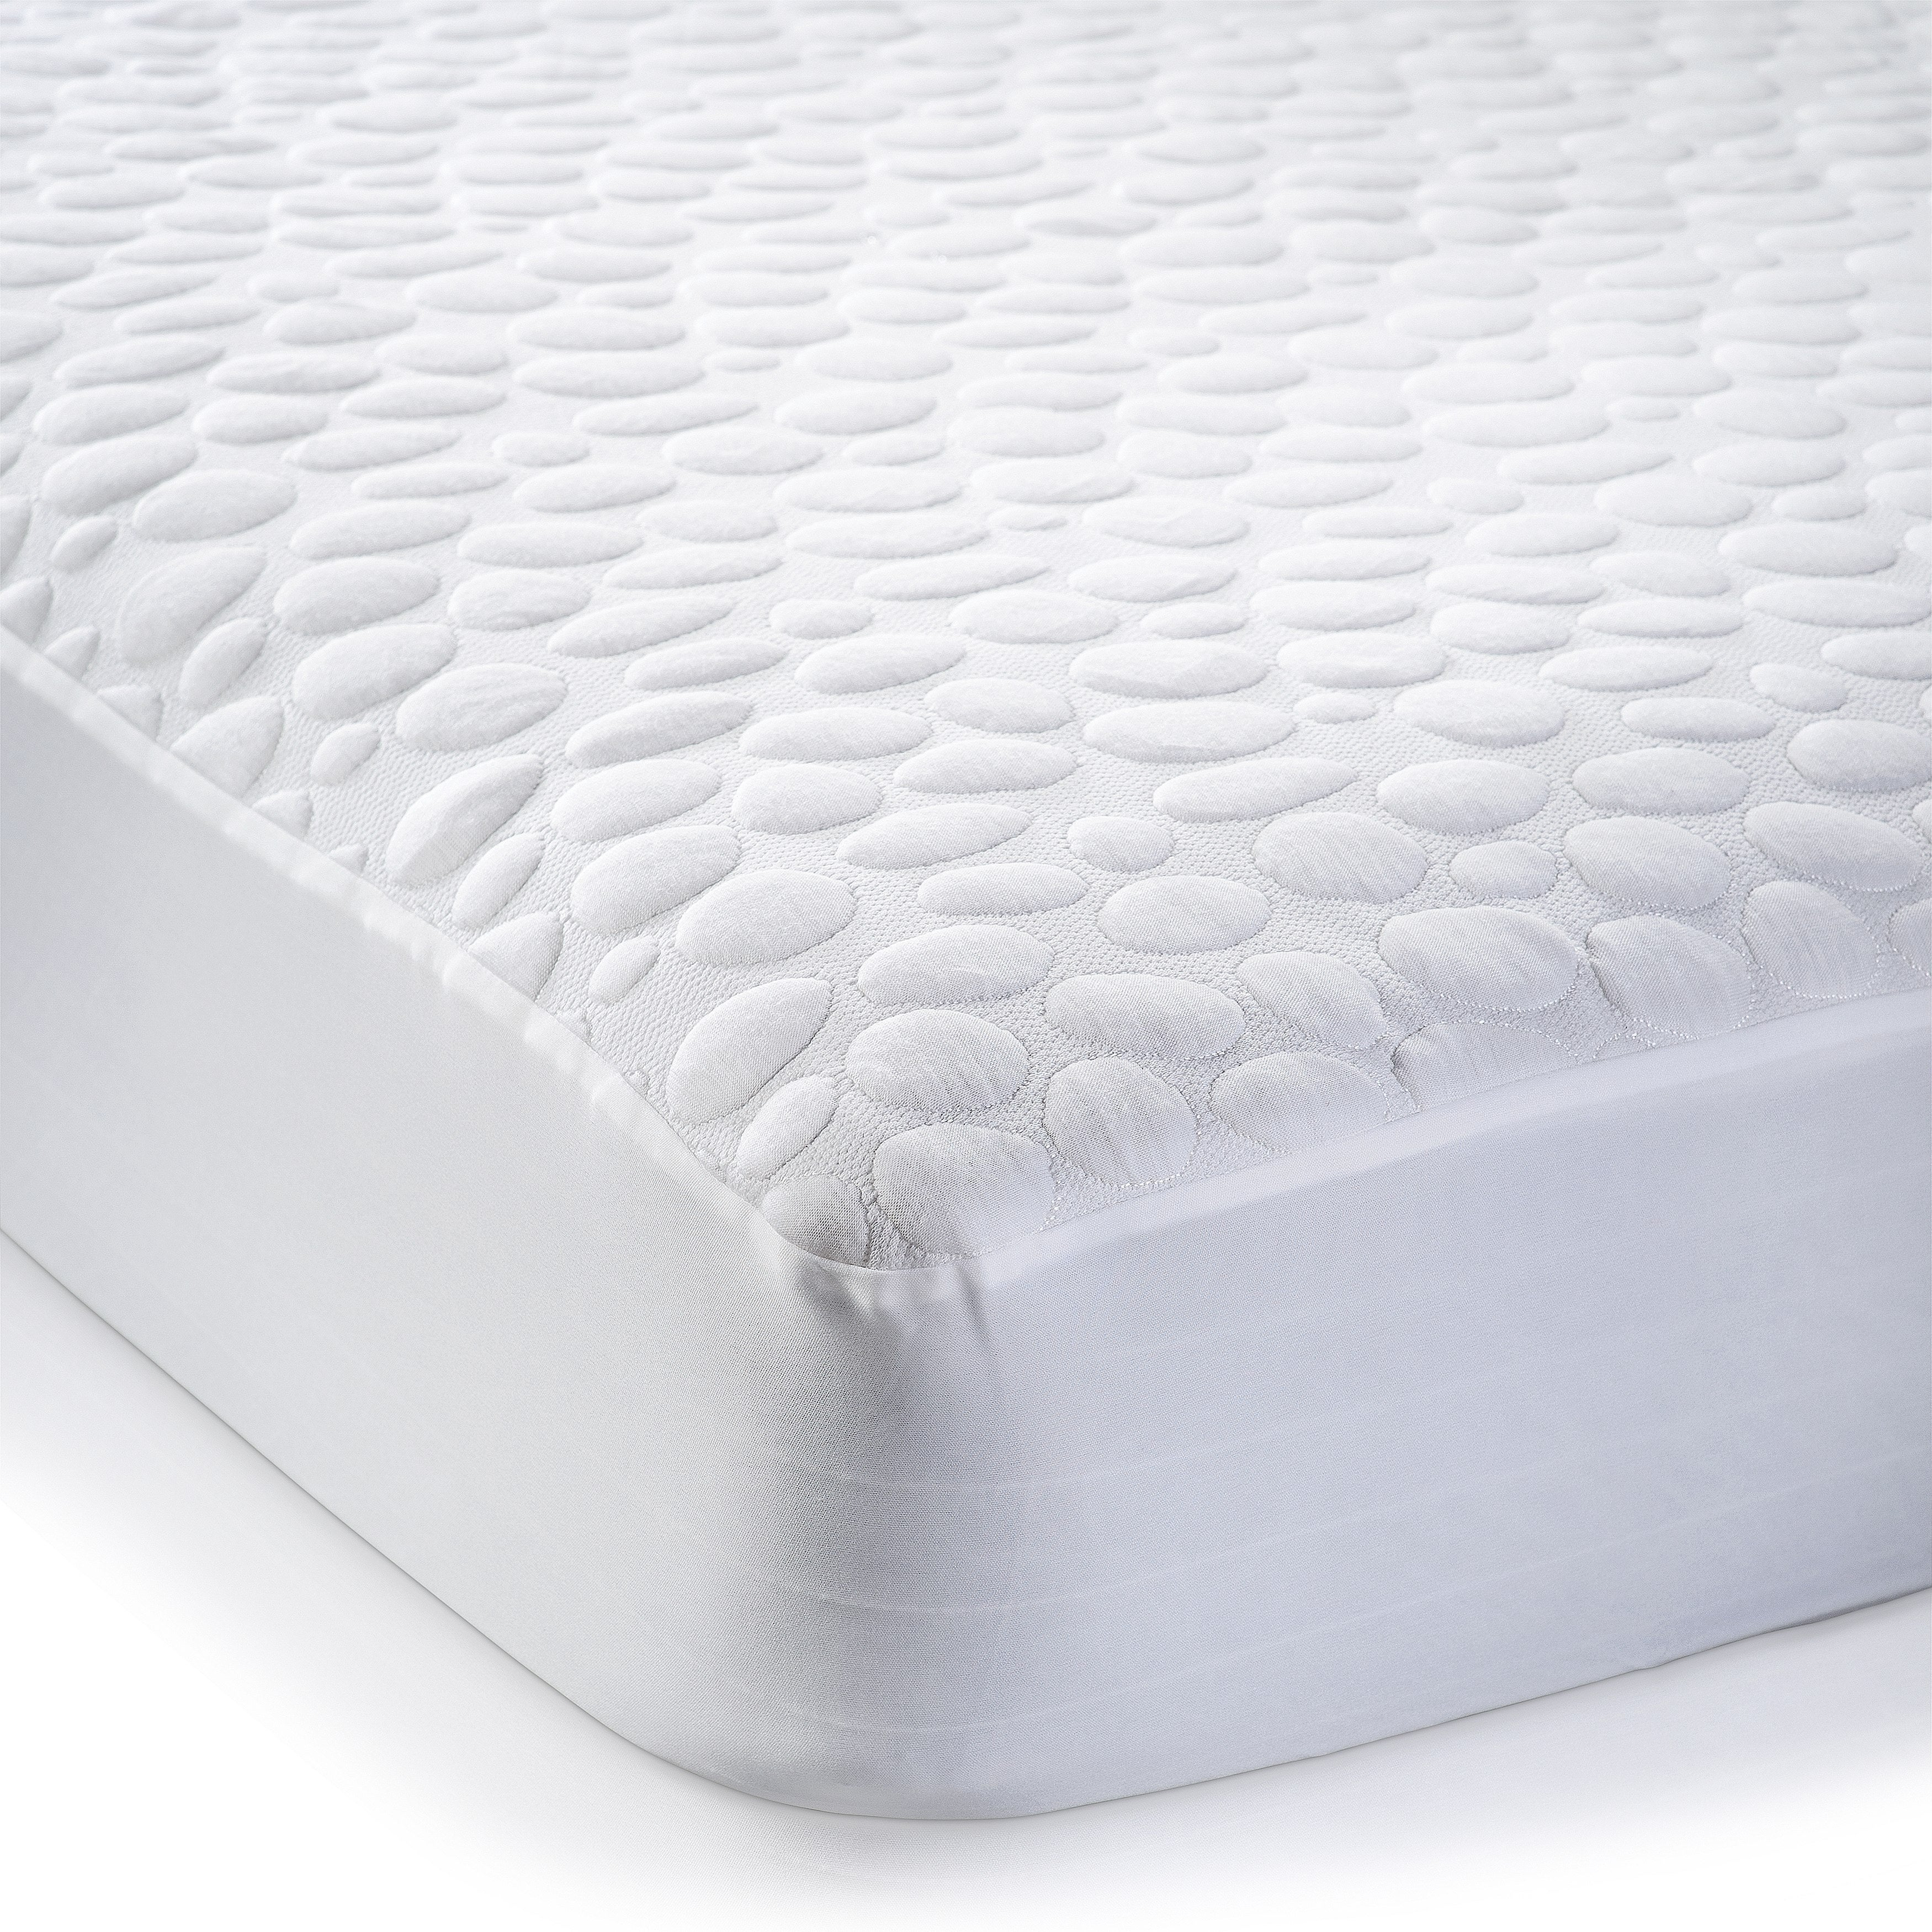 American Baby Company Waterproof Fitted Quilted Mattress Pad Multiple Variations